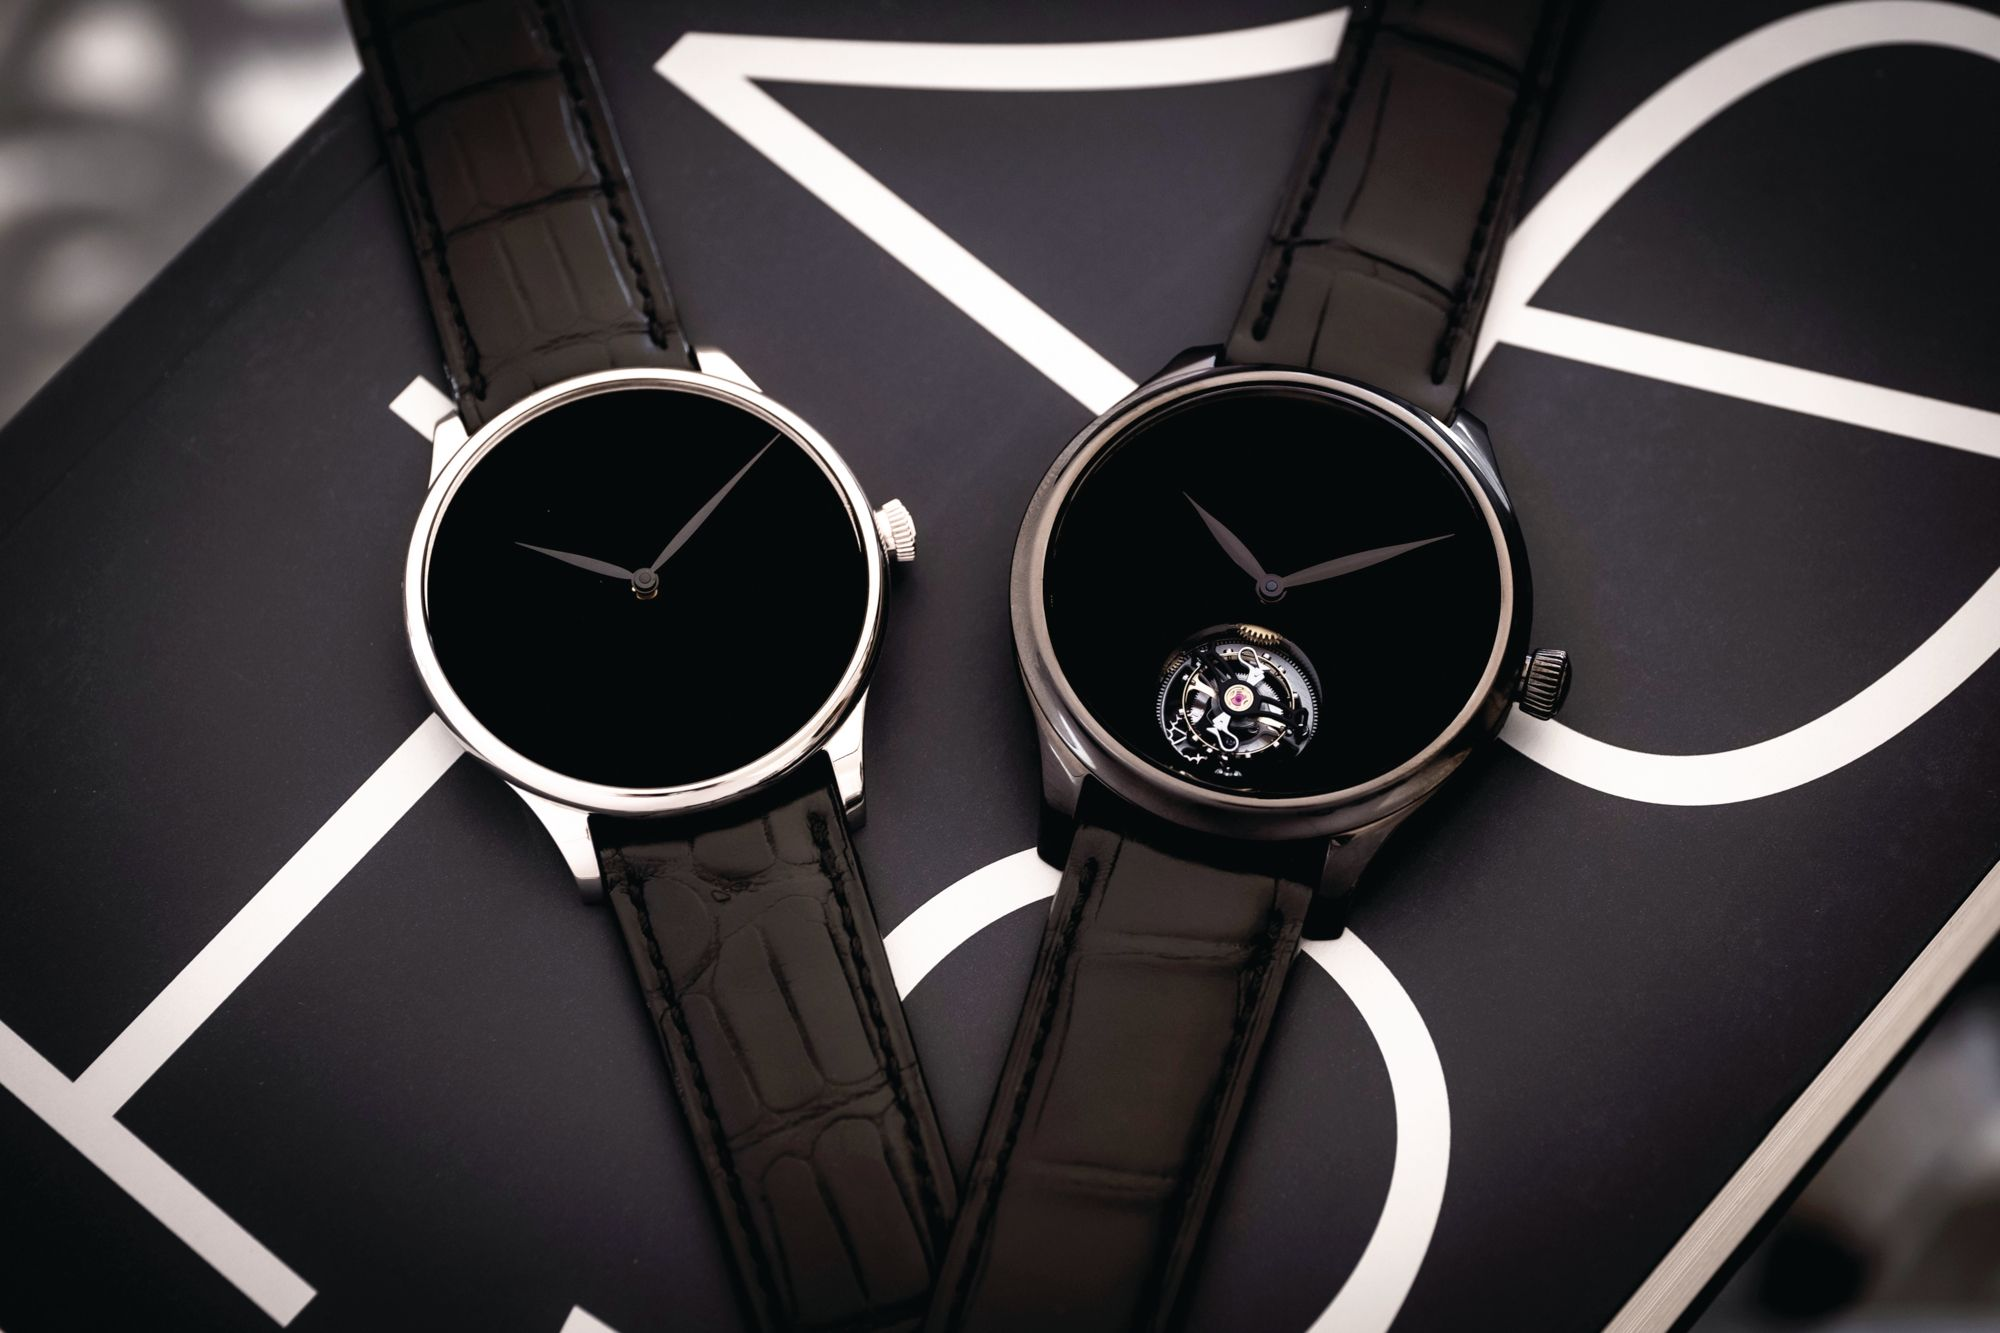 Luxury Watchmakers Are Stepping Up Their E-commerce Game In The Face Of Covid-19